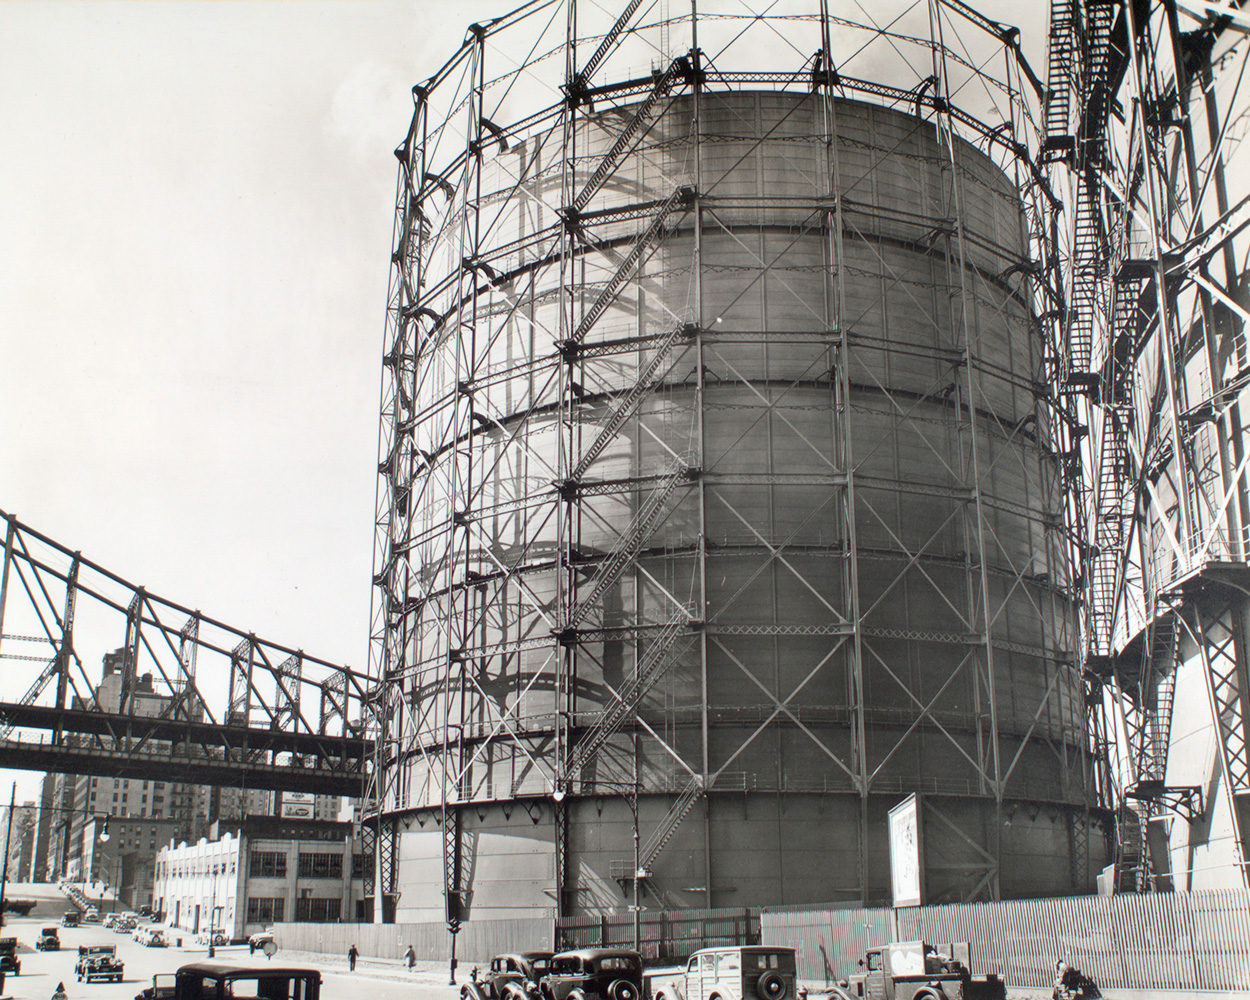 """Gas holder, York Avenue and 62nd Street, 1935. Photo by Bernice Abbott via <a href=""""https://digitalcollections.nypl.org/items/510d47d9-4f4b-a3d9-e040-e00a18064a99"""">NYPL Digital Collections</a>"""